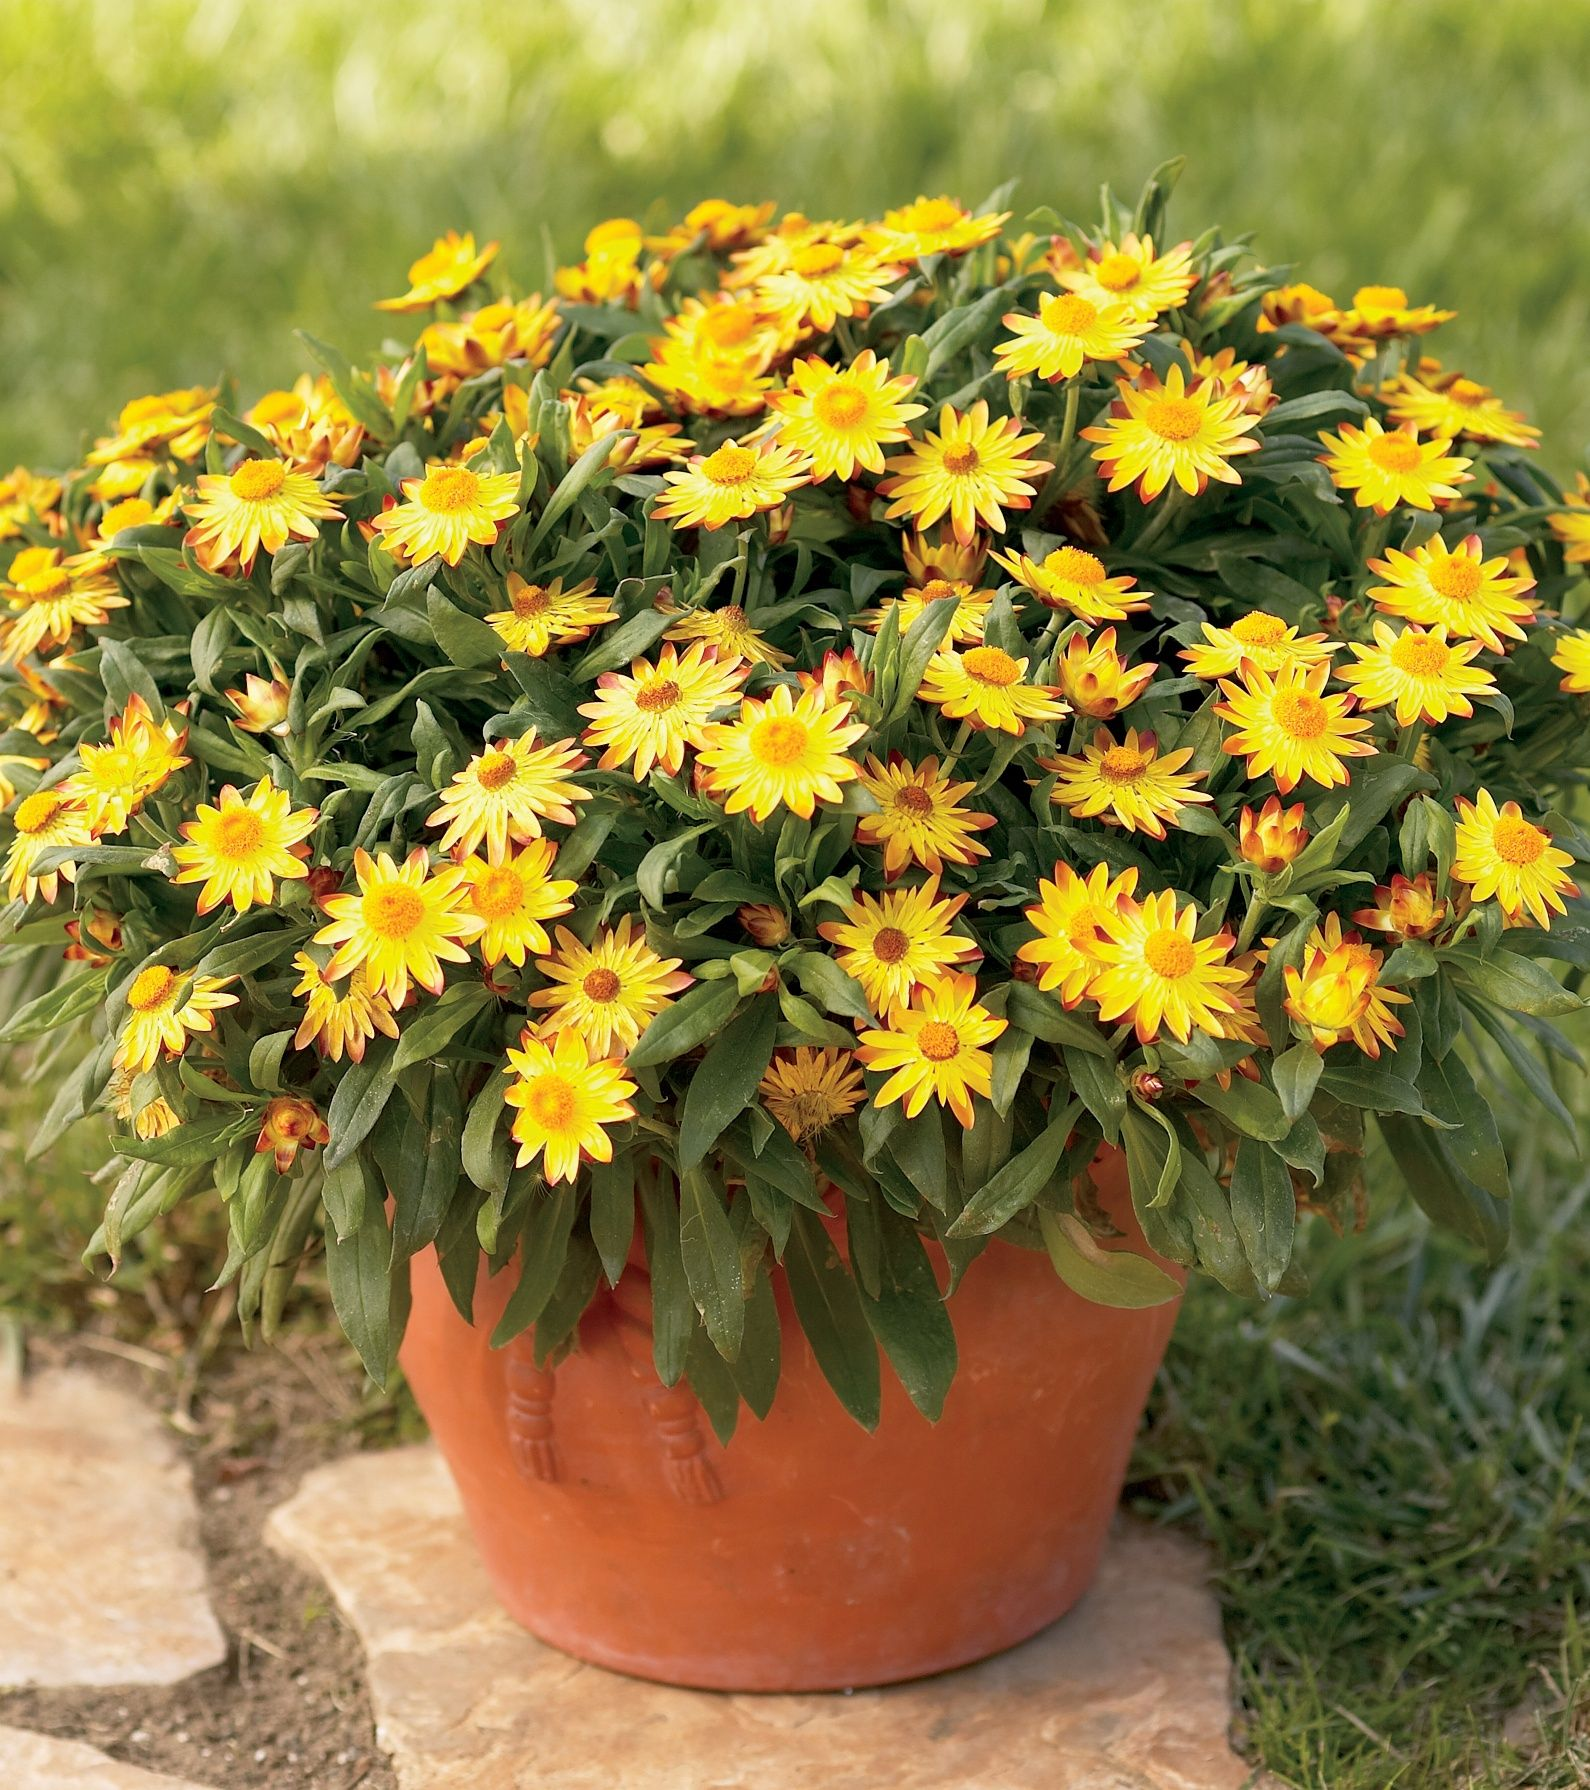 Sundaze Golden Beauty Is One Tough Plant Very Heat Tolerant With